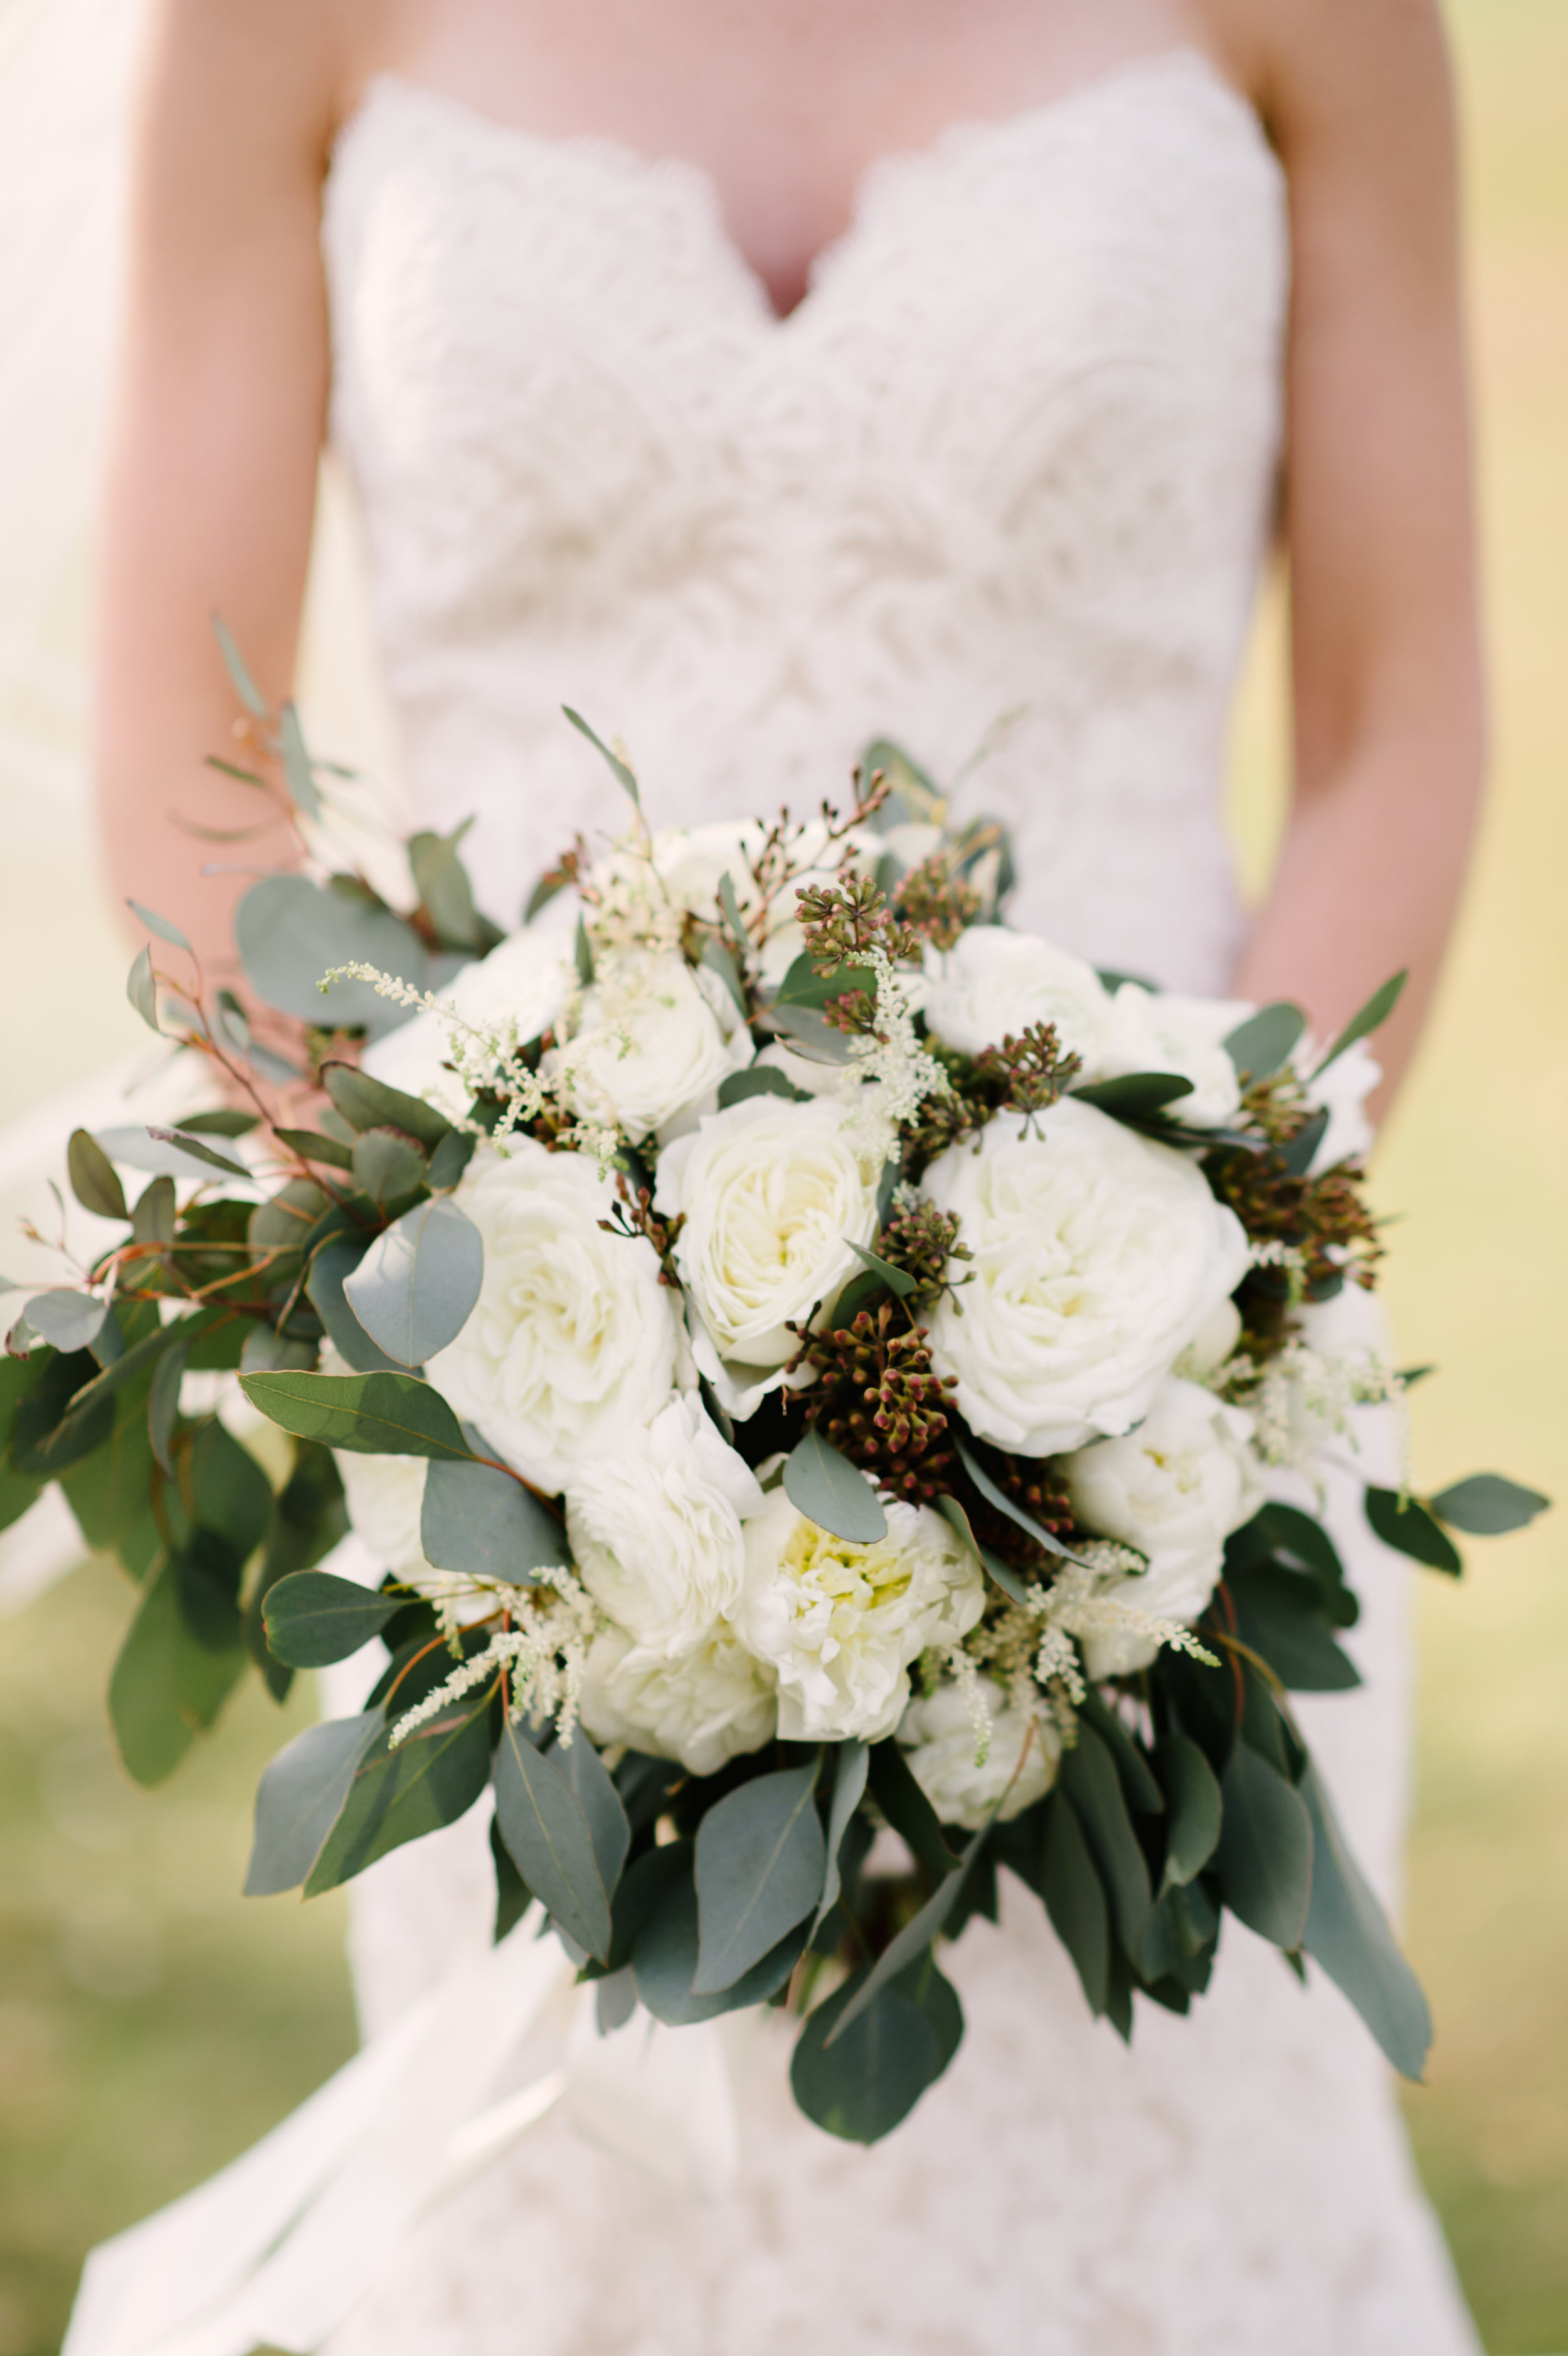 The bride's bouquet consisted of seeded eucalyptus and ivory garden roses.